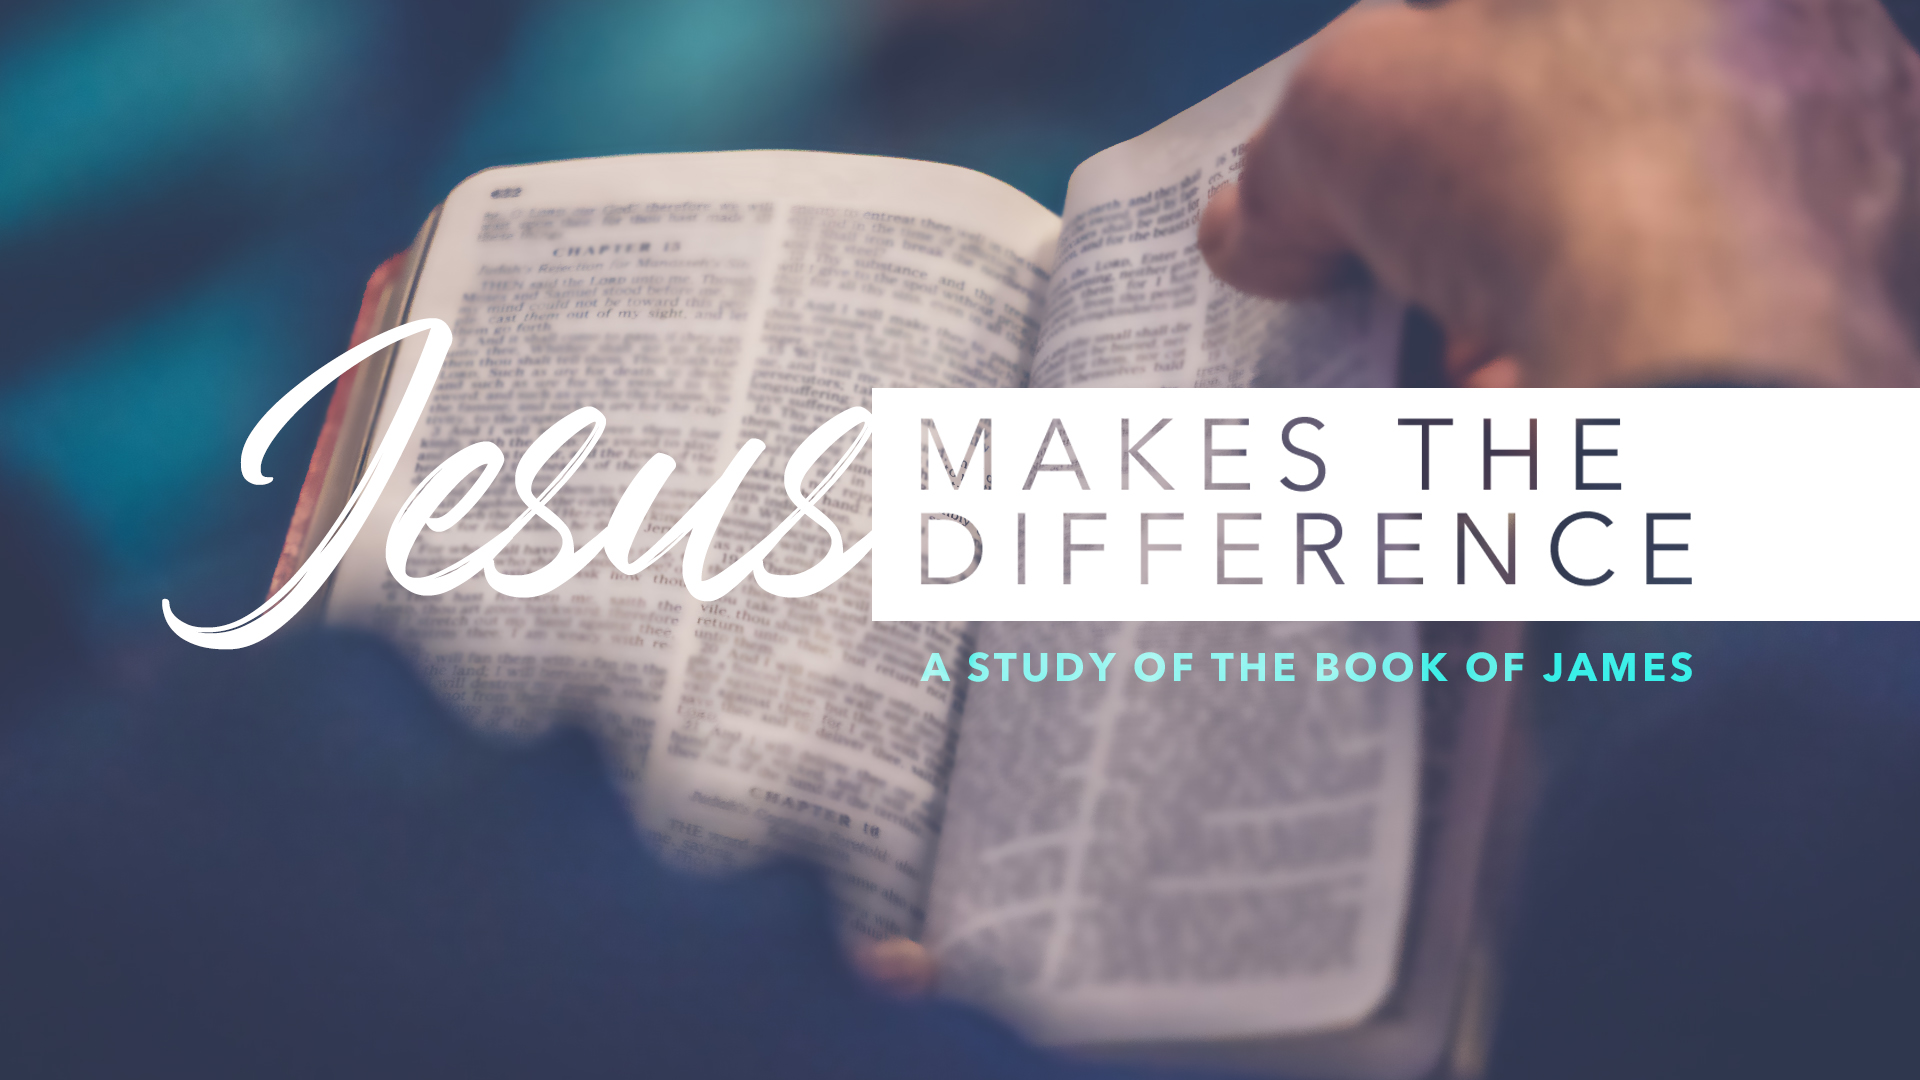 How I Speak - Jesus Makes the Difference